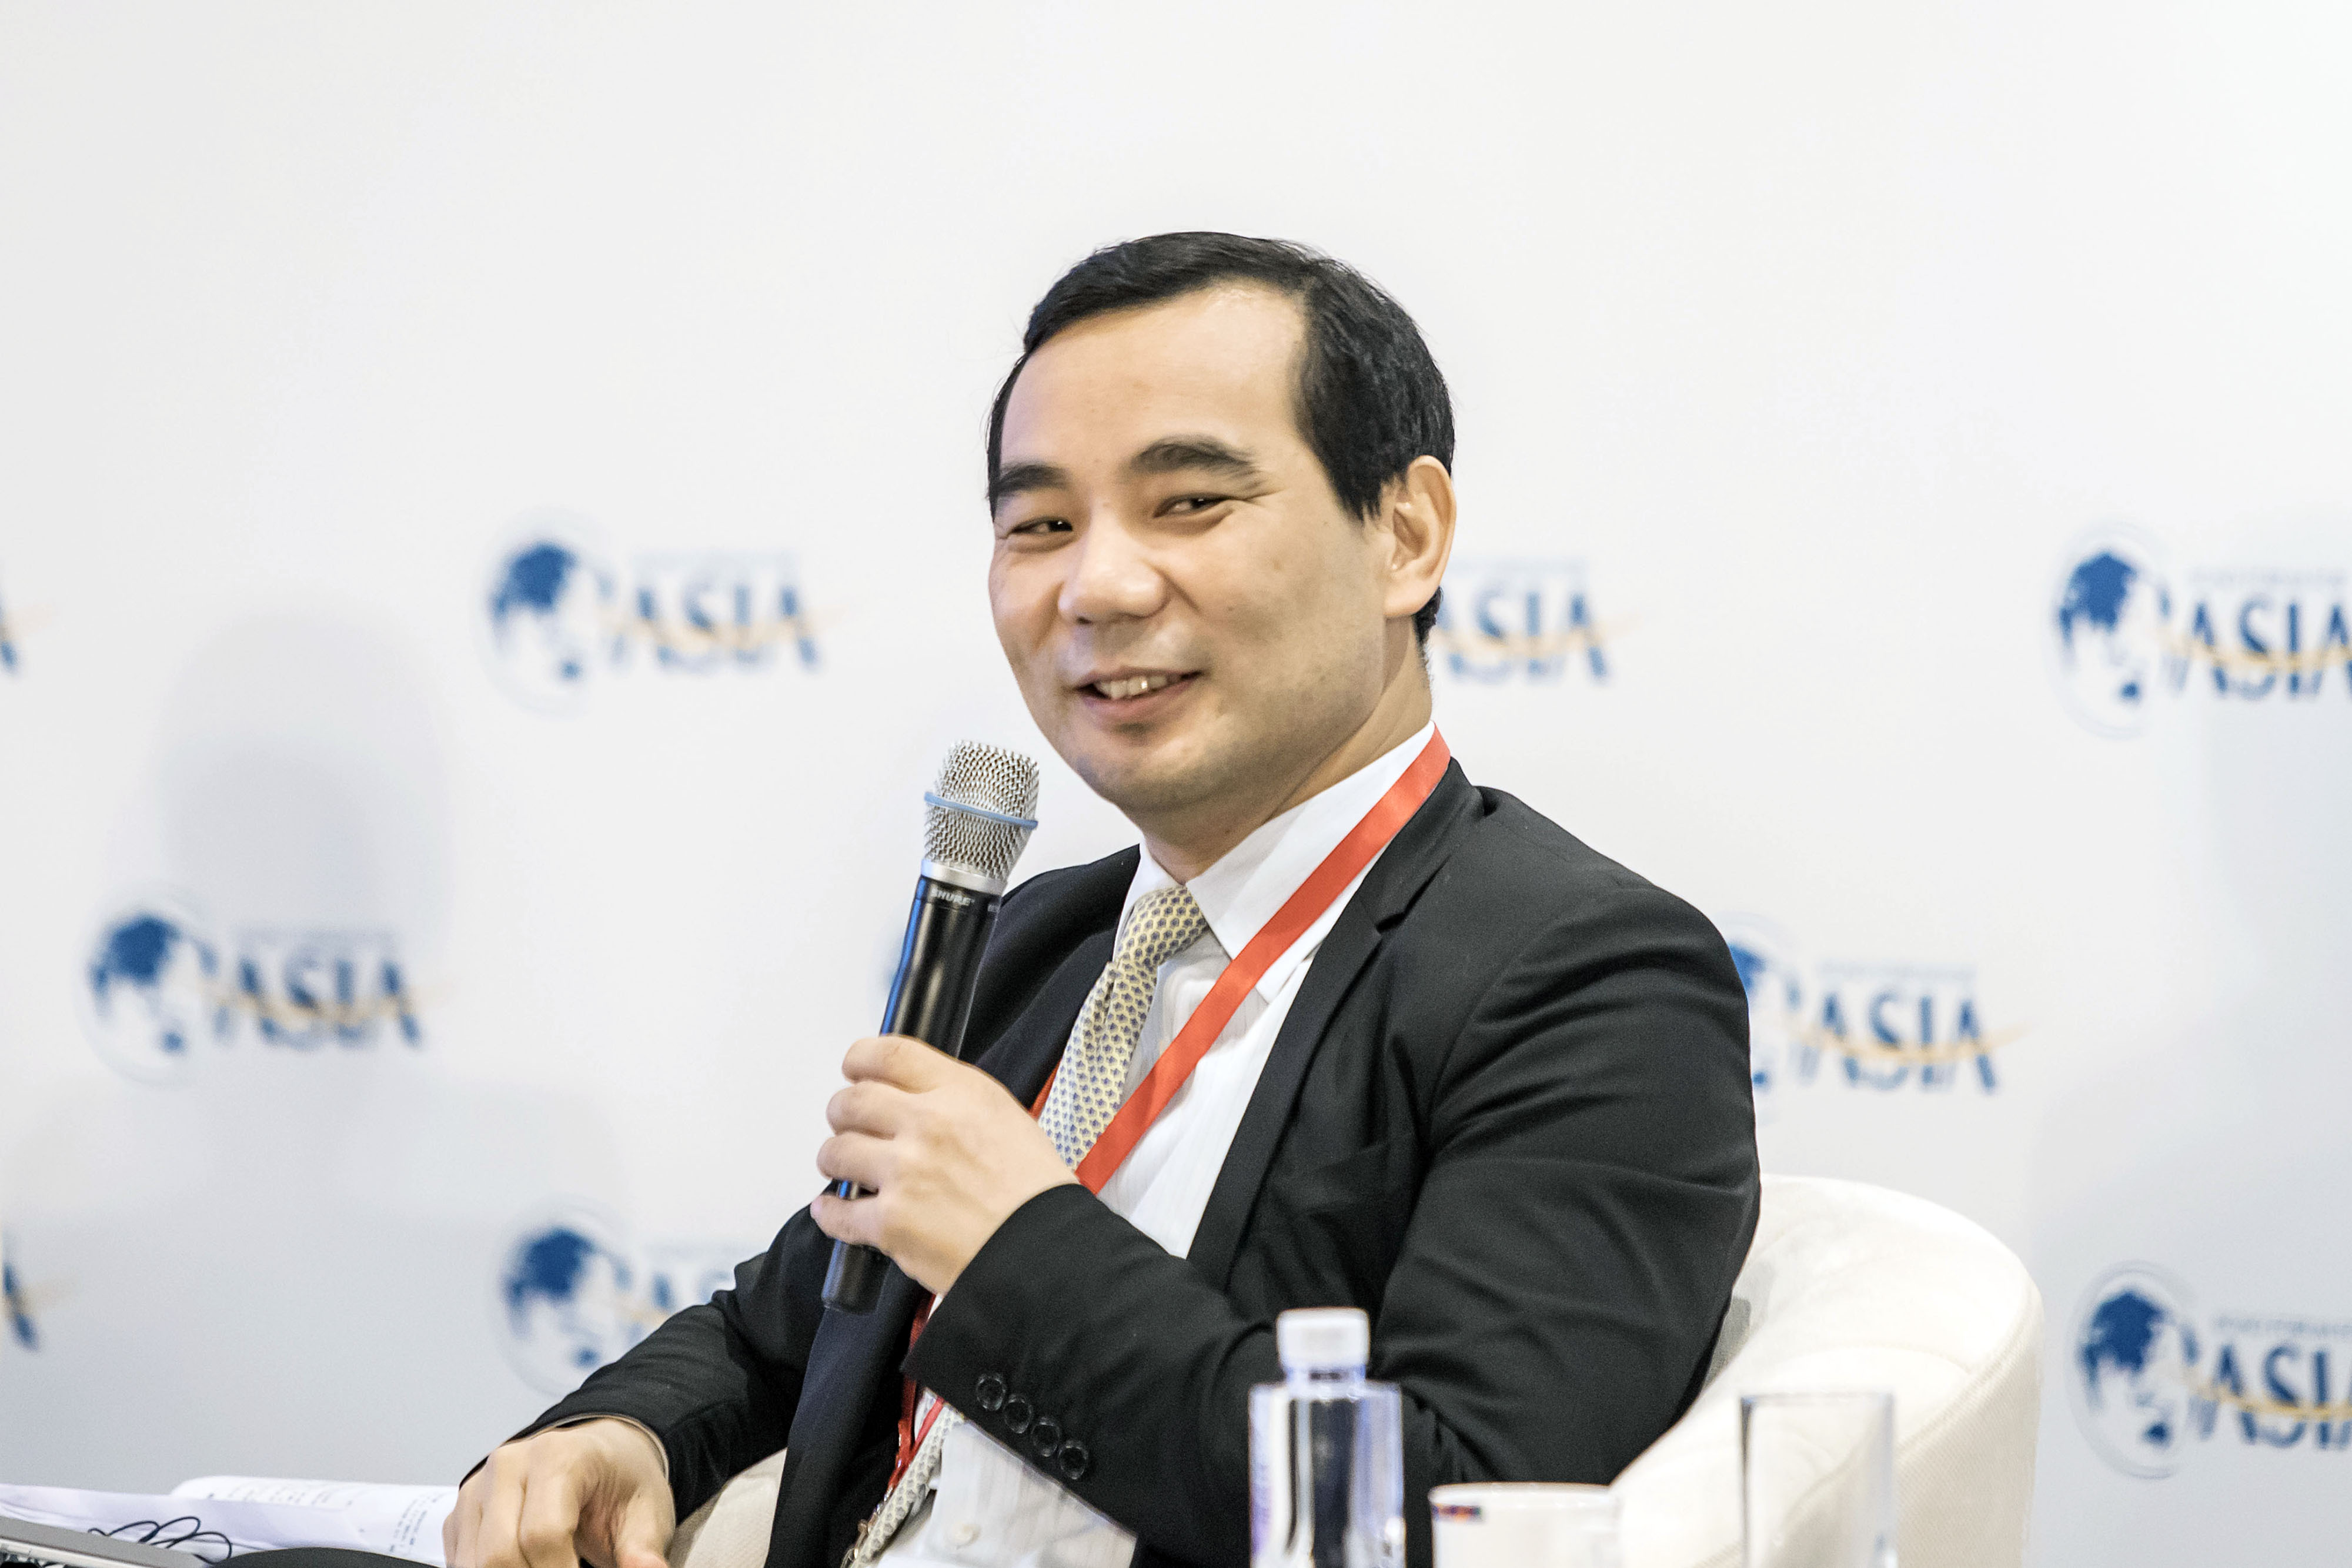 Key Speakers at the Annual Boao Forum